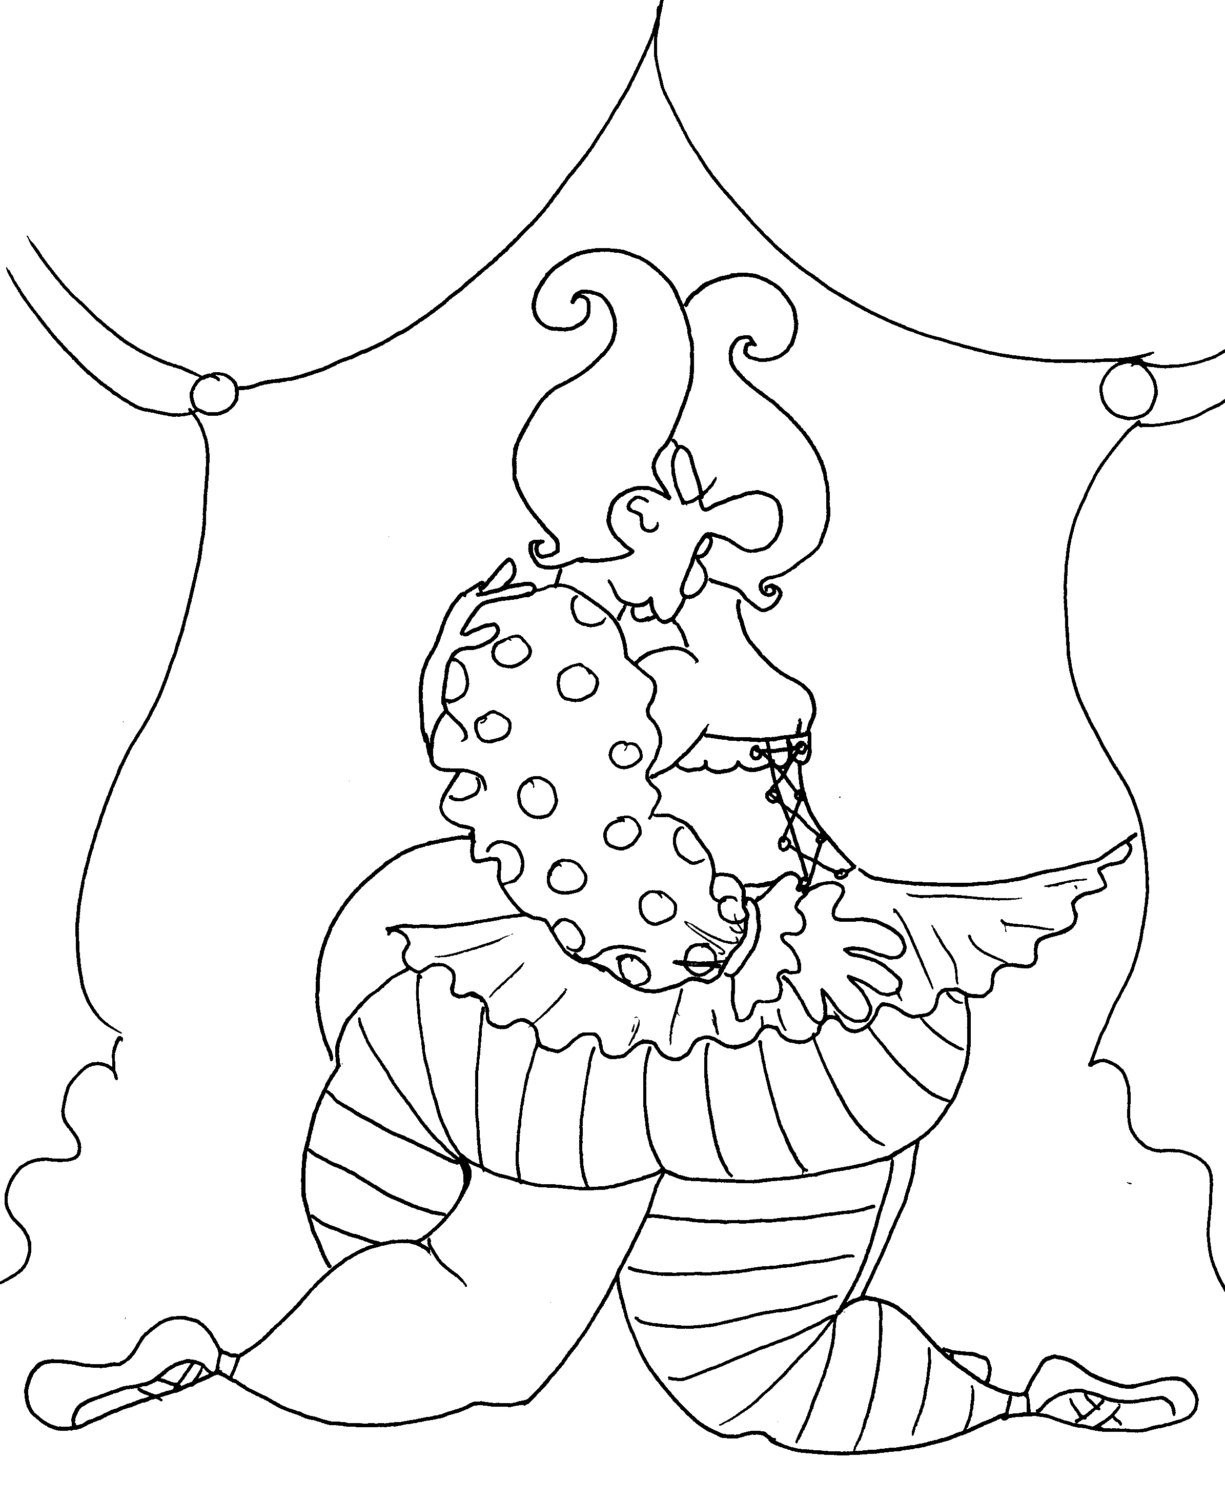 Kama Sutra Coloring Book  The Proposal Kama Sutra Pose y Coloring Pages from the